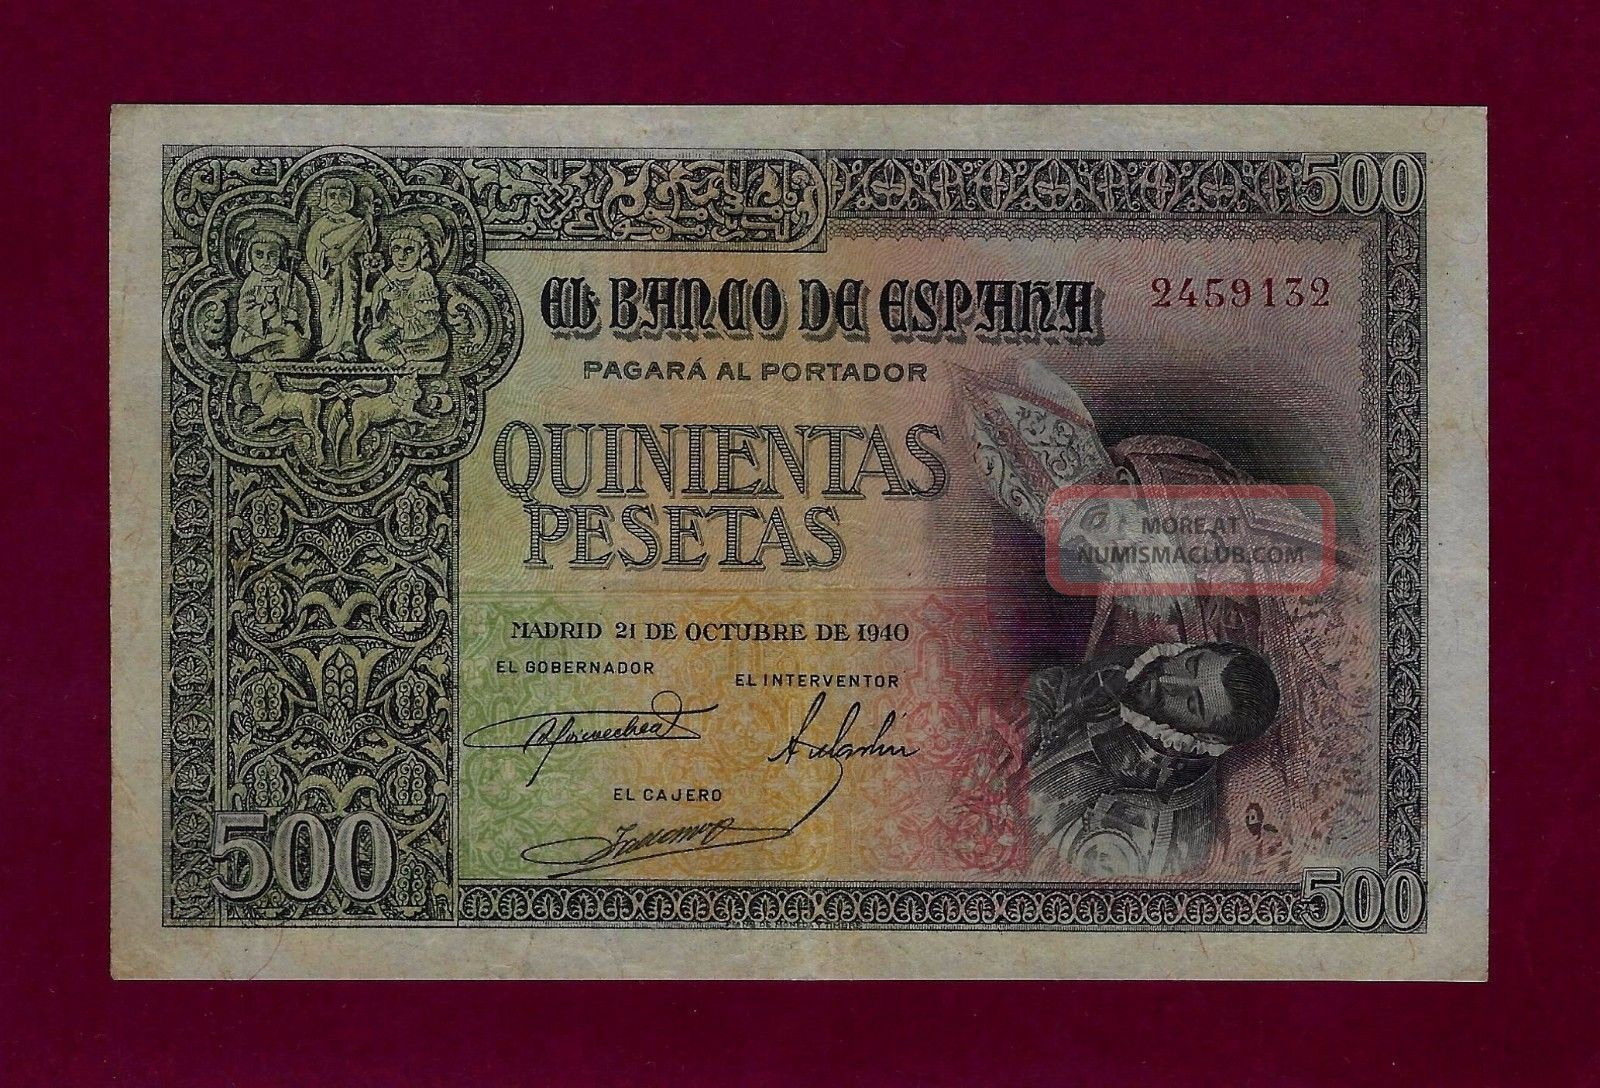 Spain 500 Pesetas 1940 P - 124 Vf, Europe photo